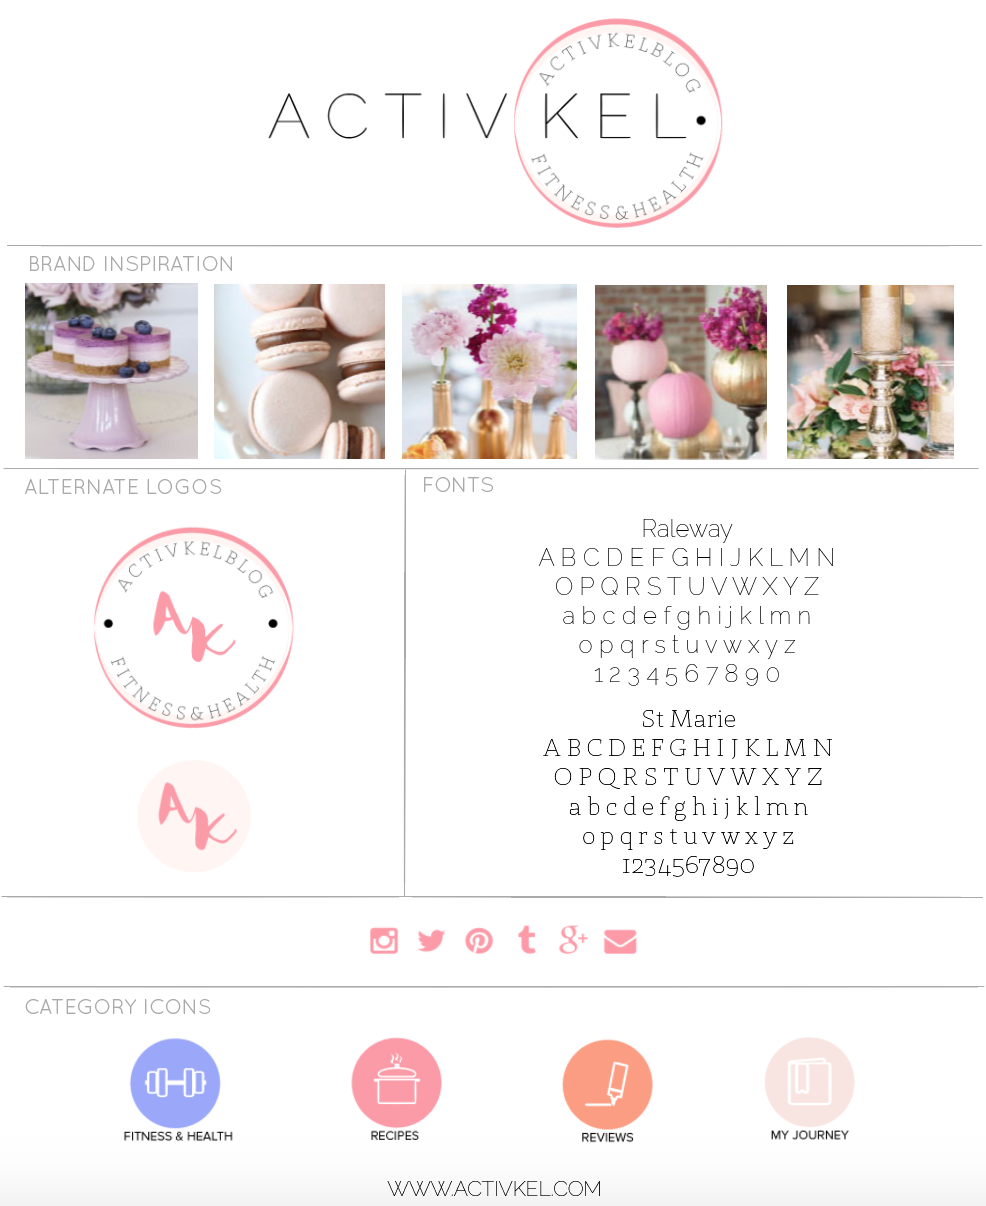 Brand style board for ActivKel